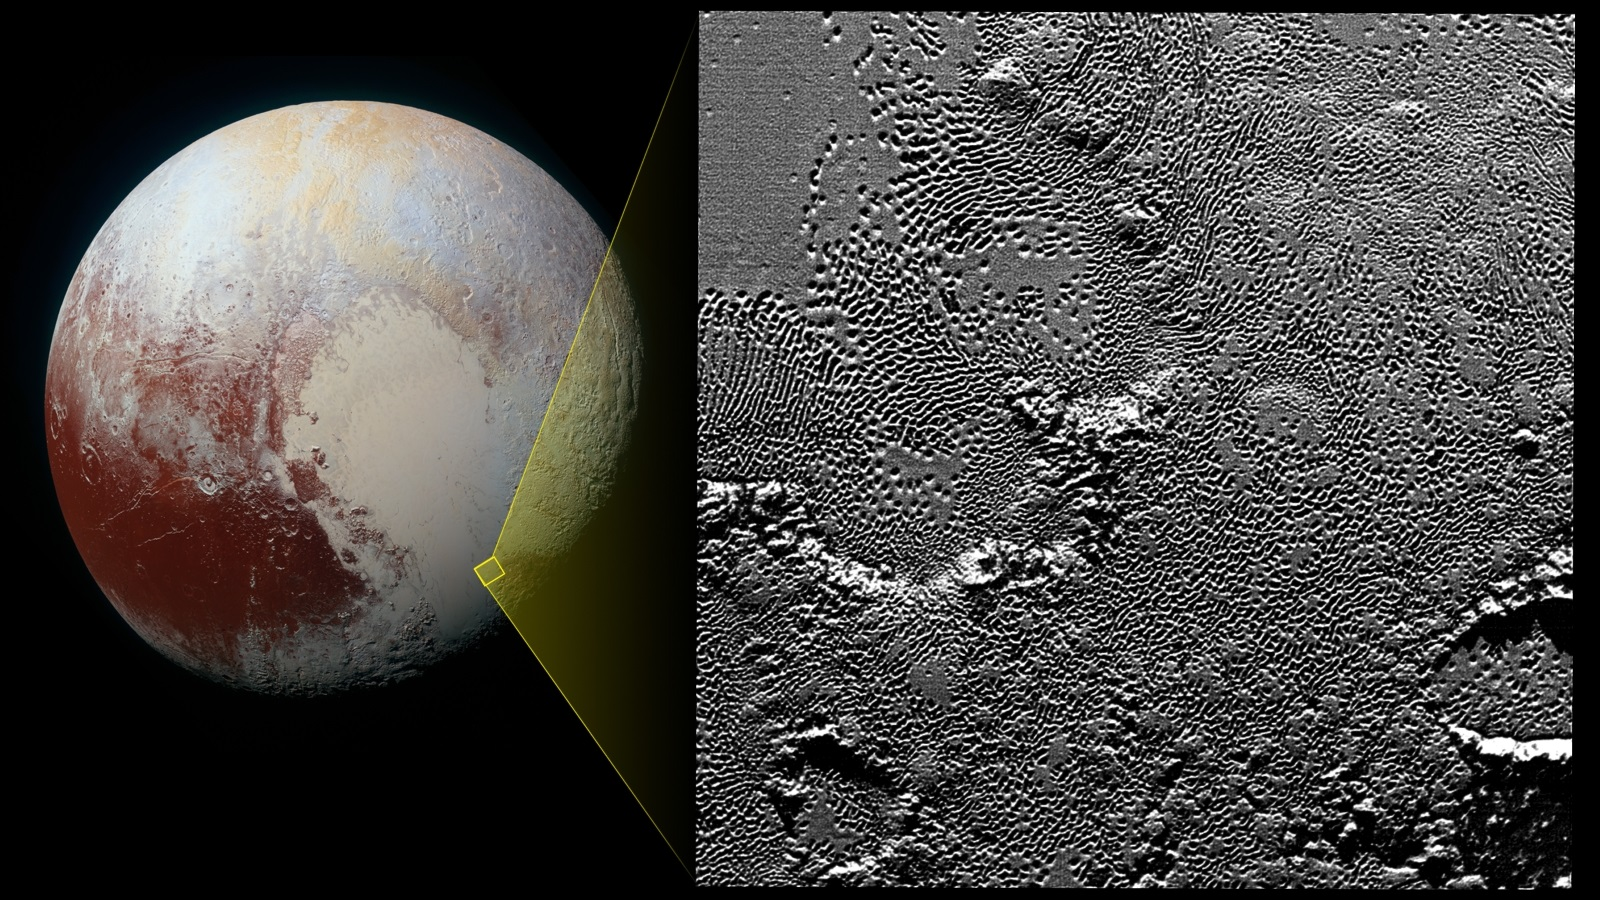 Pluto's Pattern of Pits observed by New Horizons